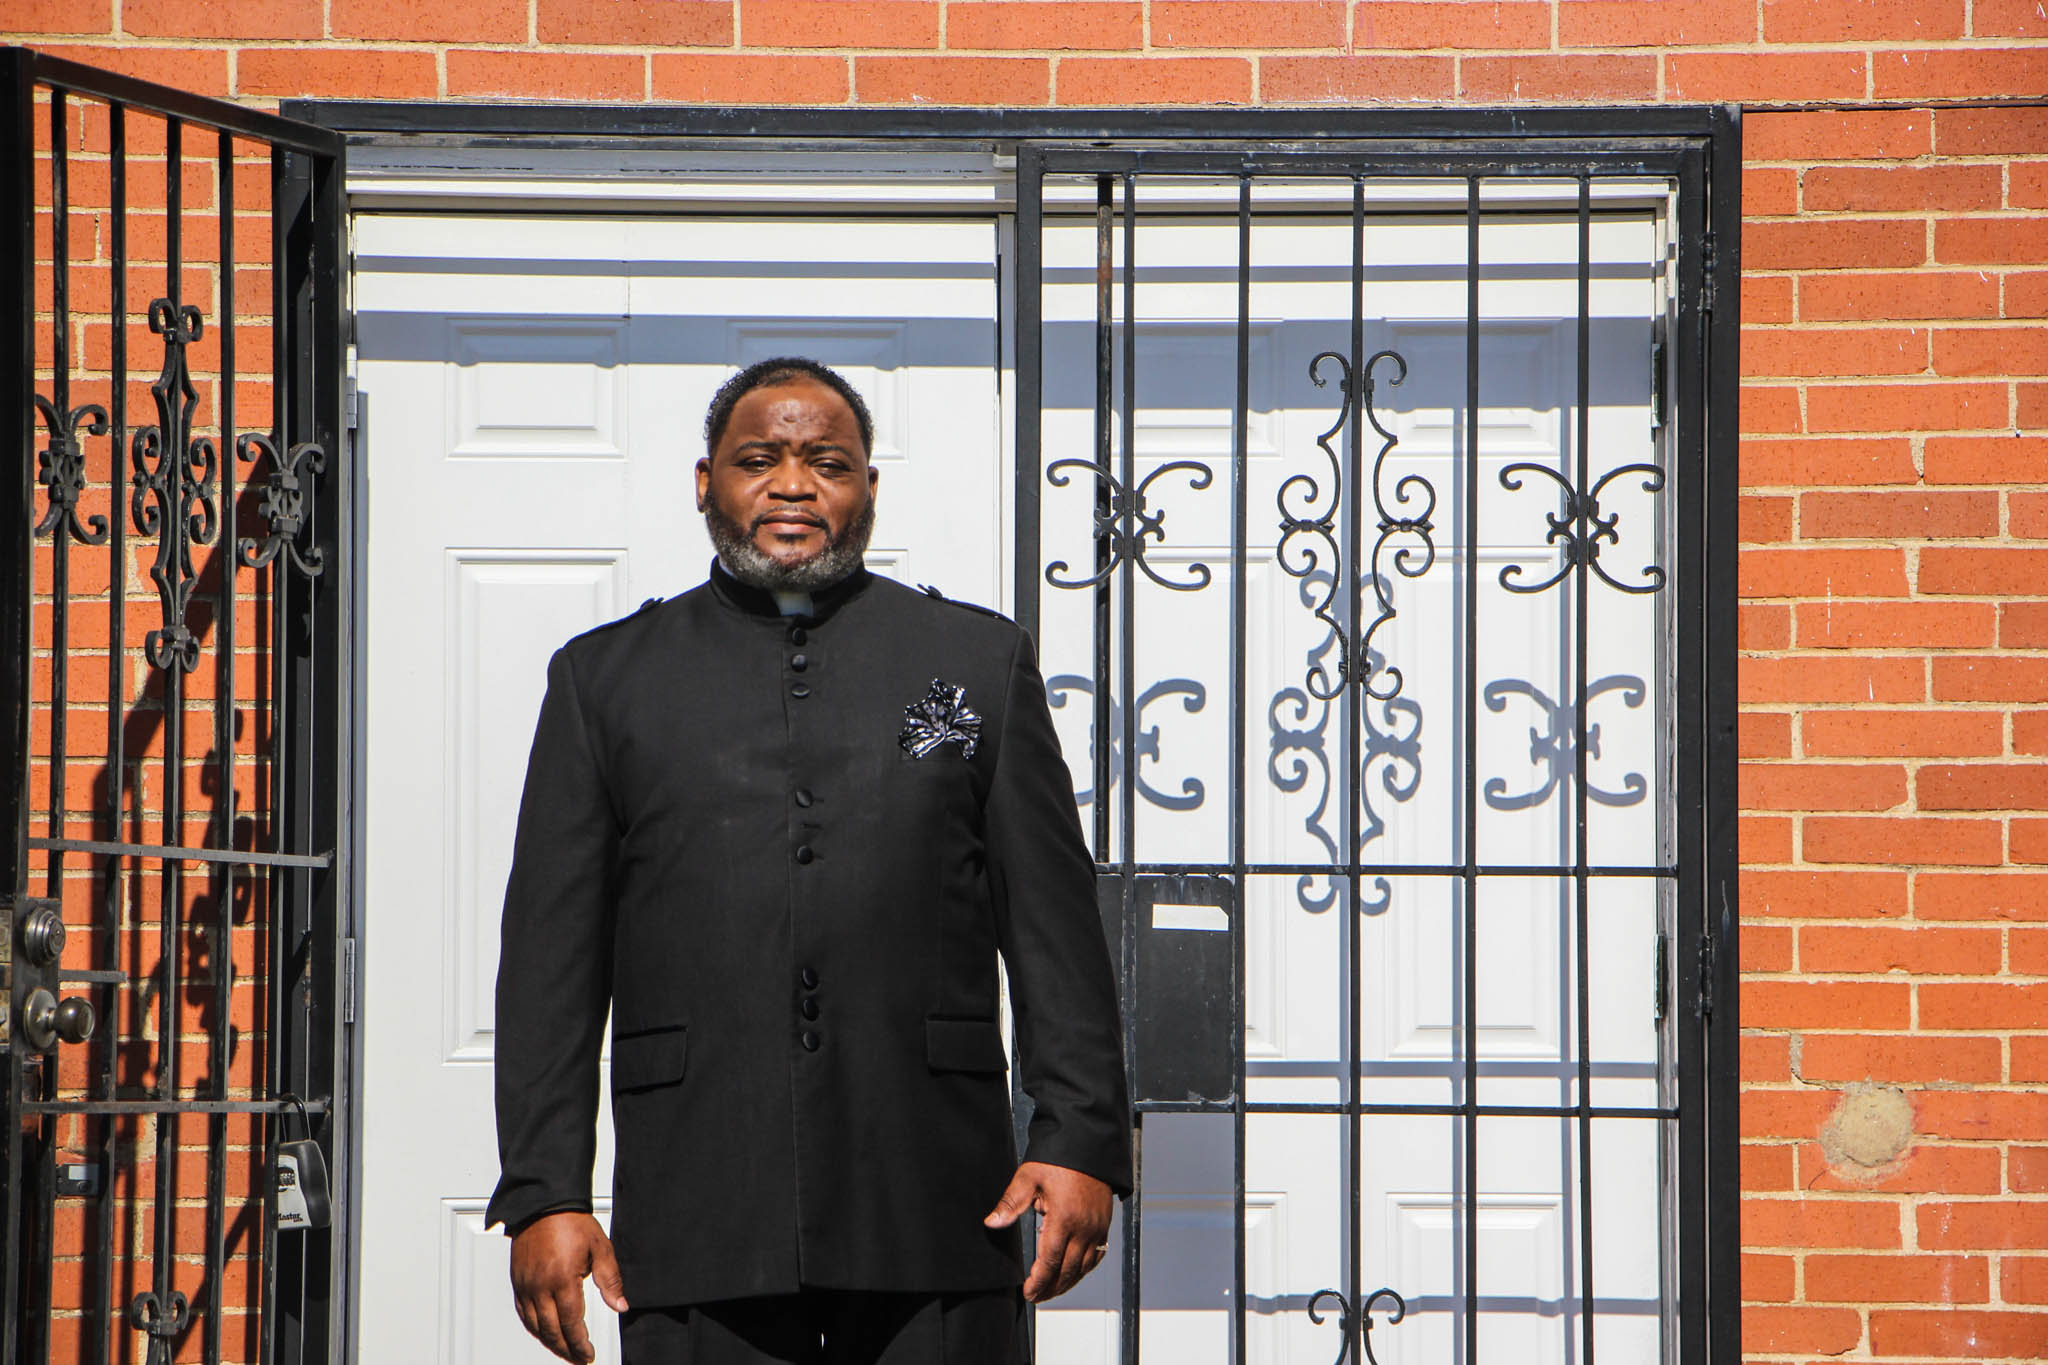 Cedric B. West is the pastor of the Ark of God Revival Temple in West Dallas. Photo/Jessica Diaz-Hurtado